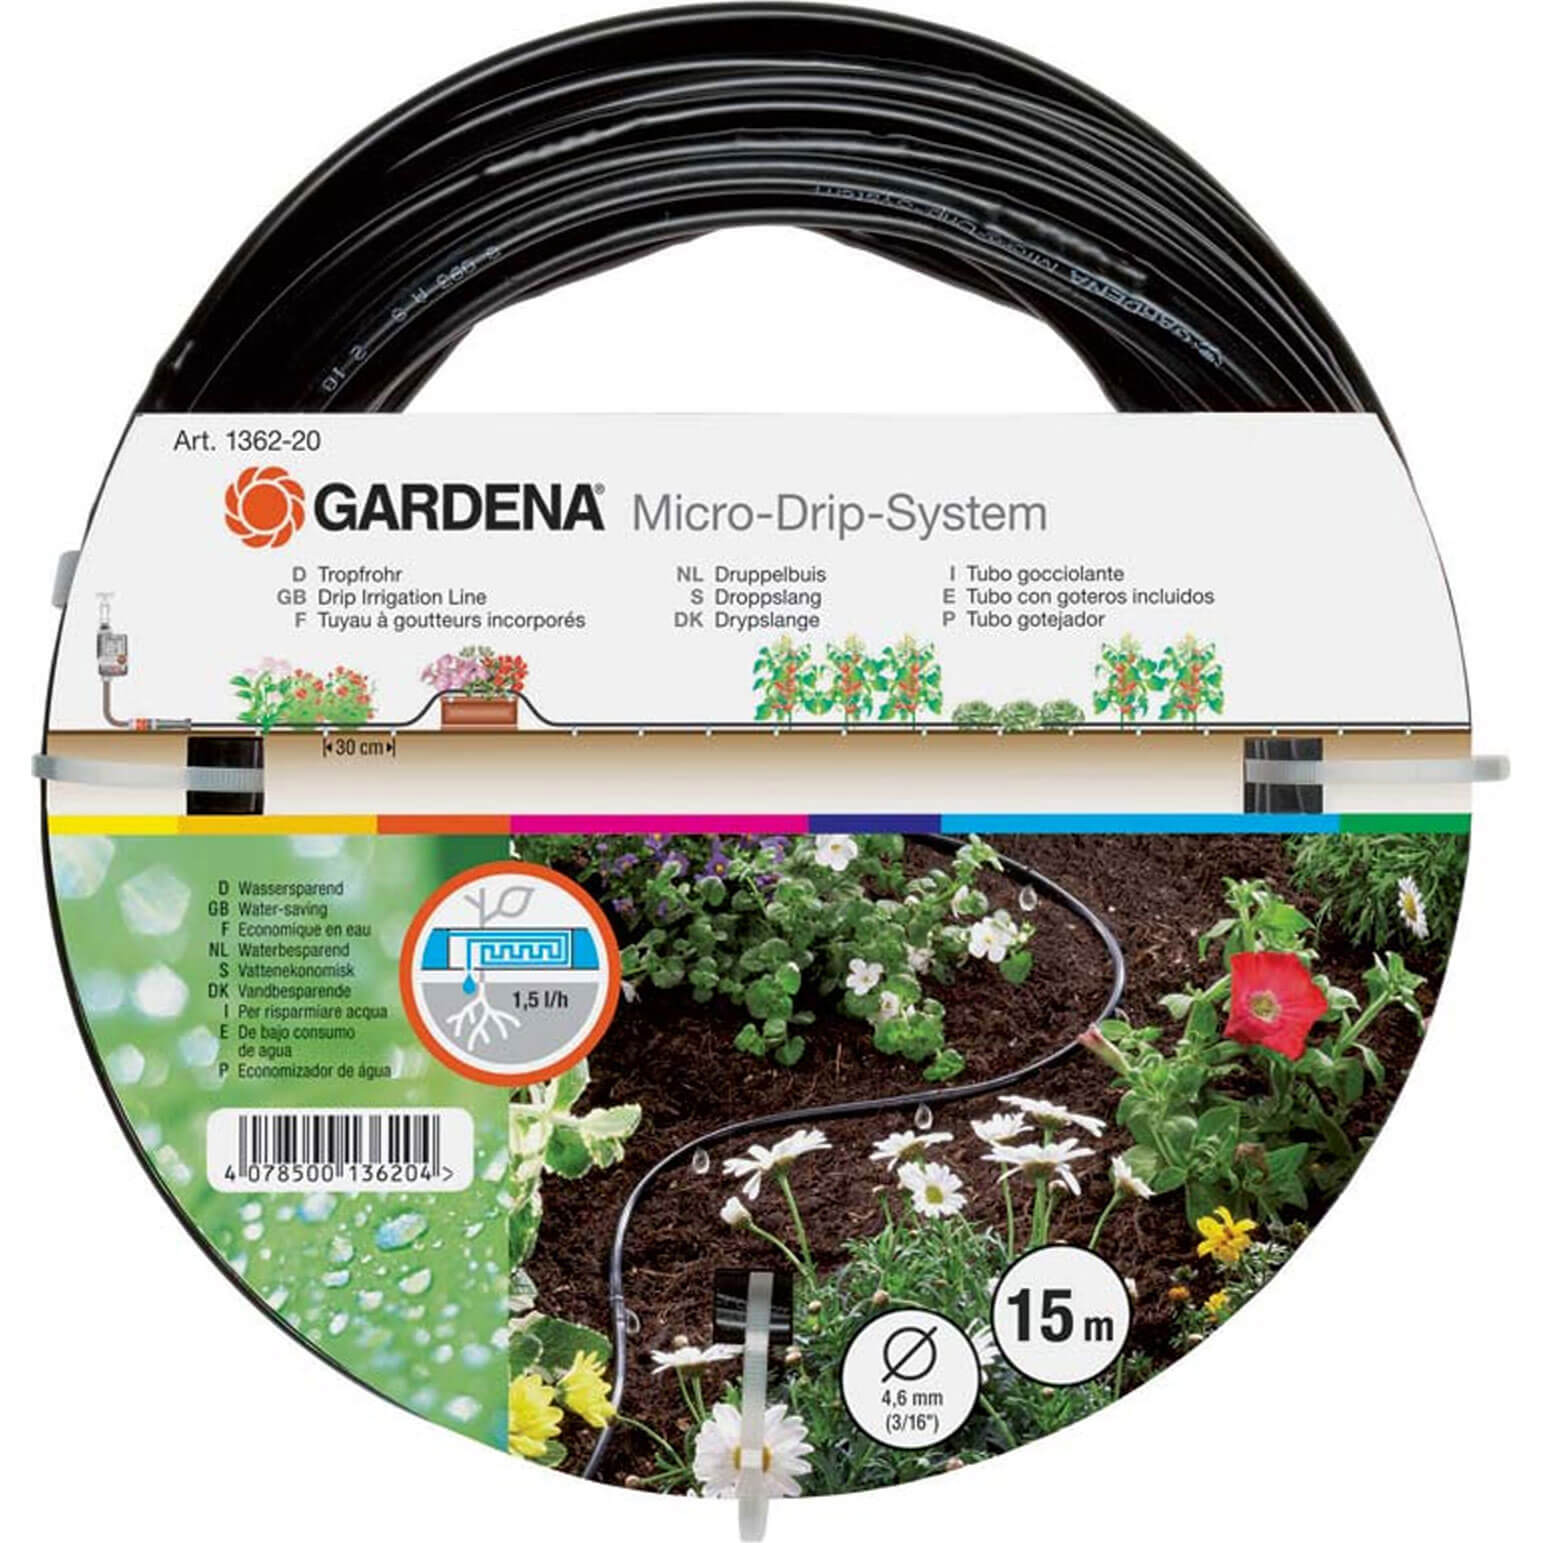 Gardena 15 Metre Above Ground Drip Irrigation Pipe 4.6mm (3/16&quot) (Micro Drip System)